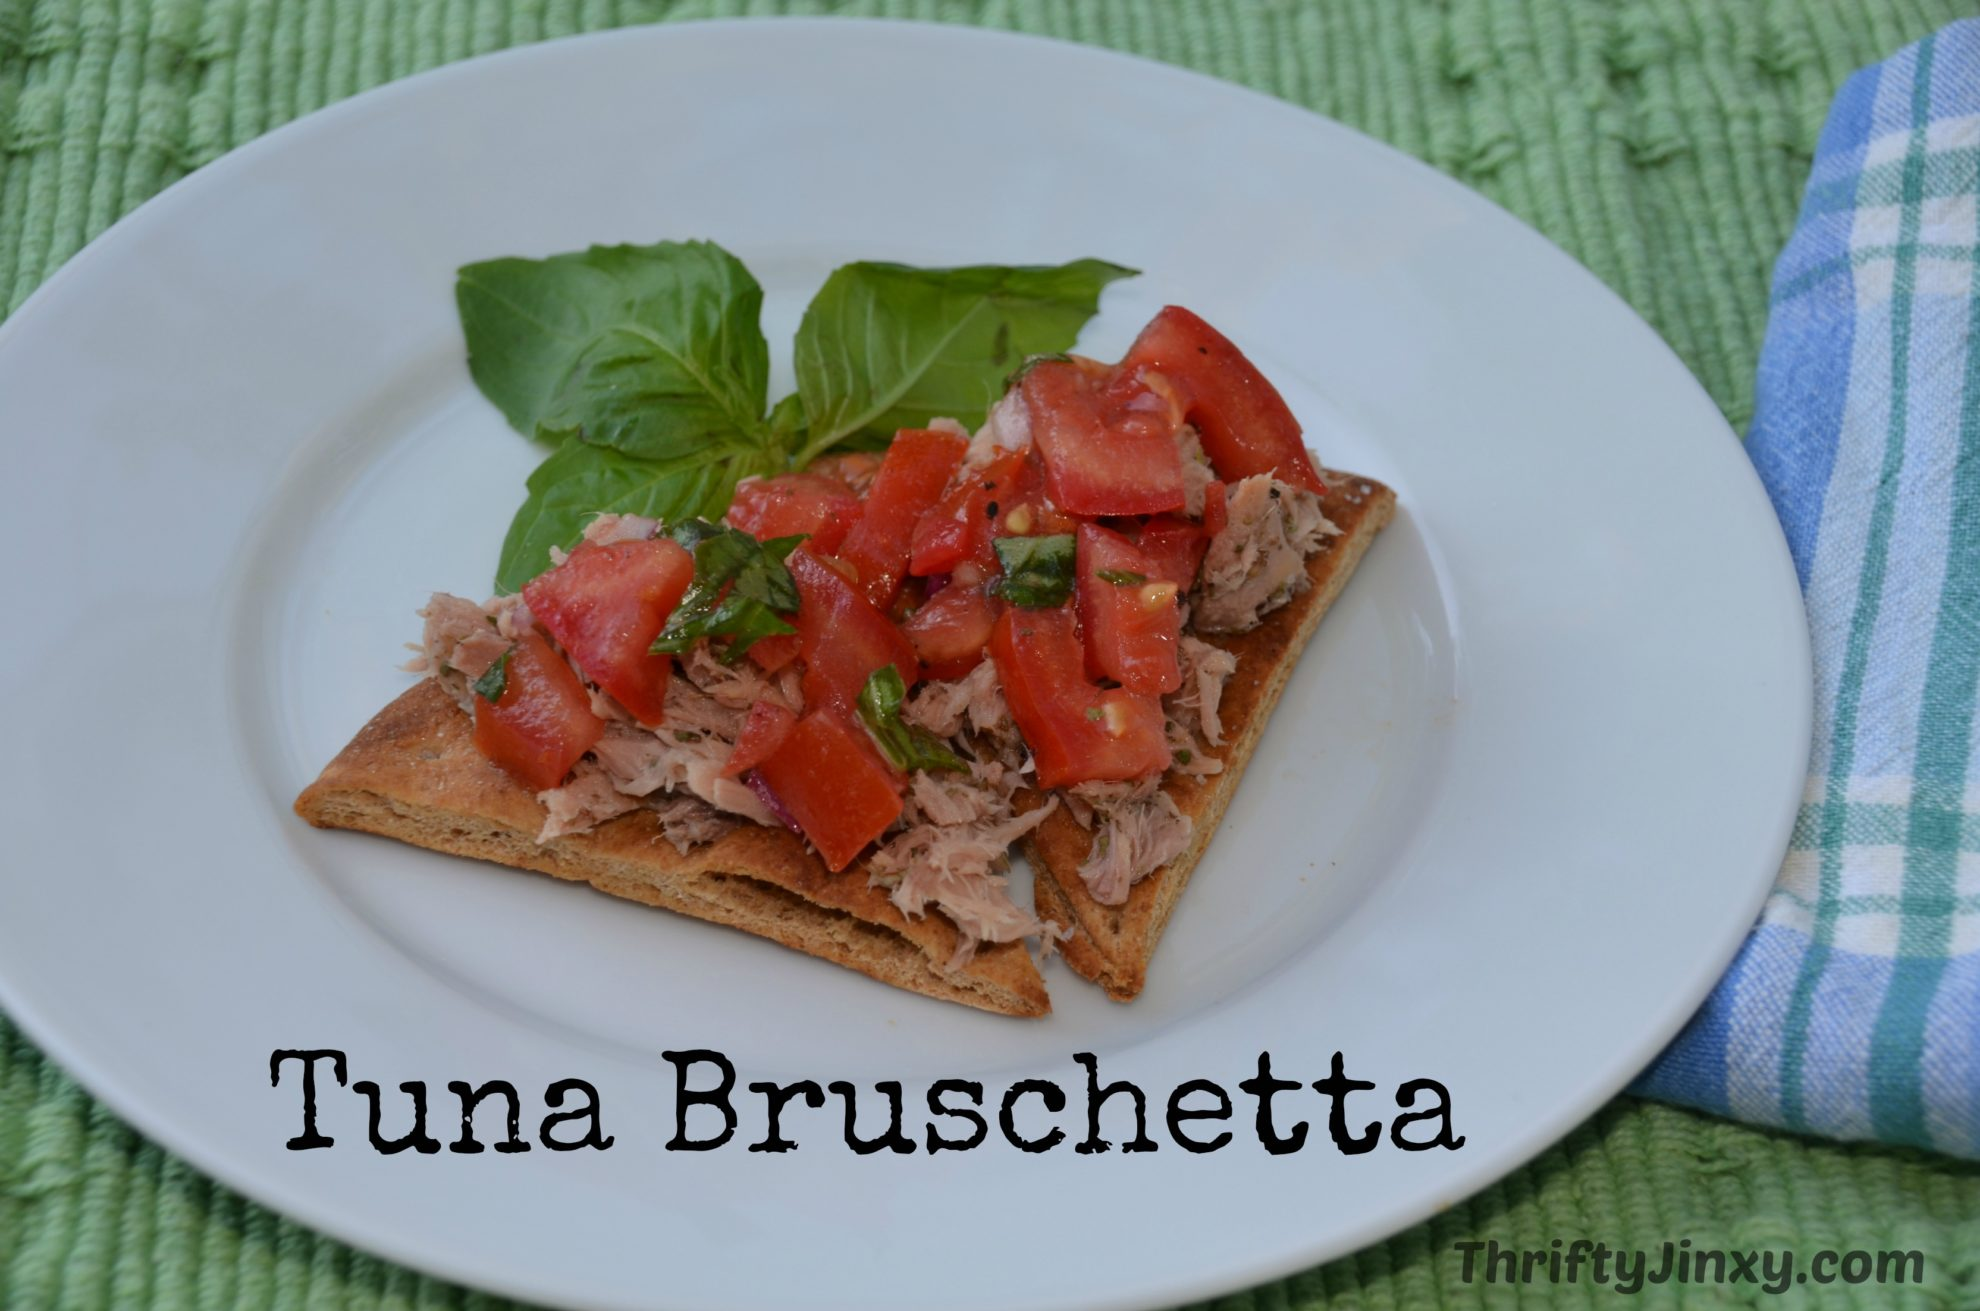 Tuna Bruschetta Recipe